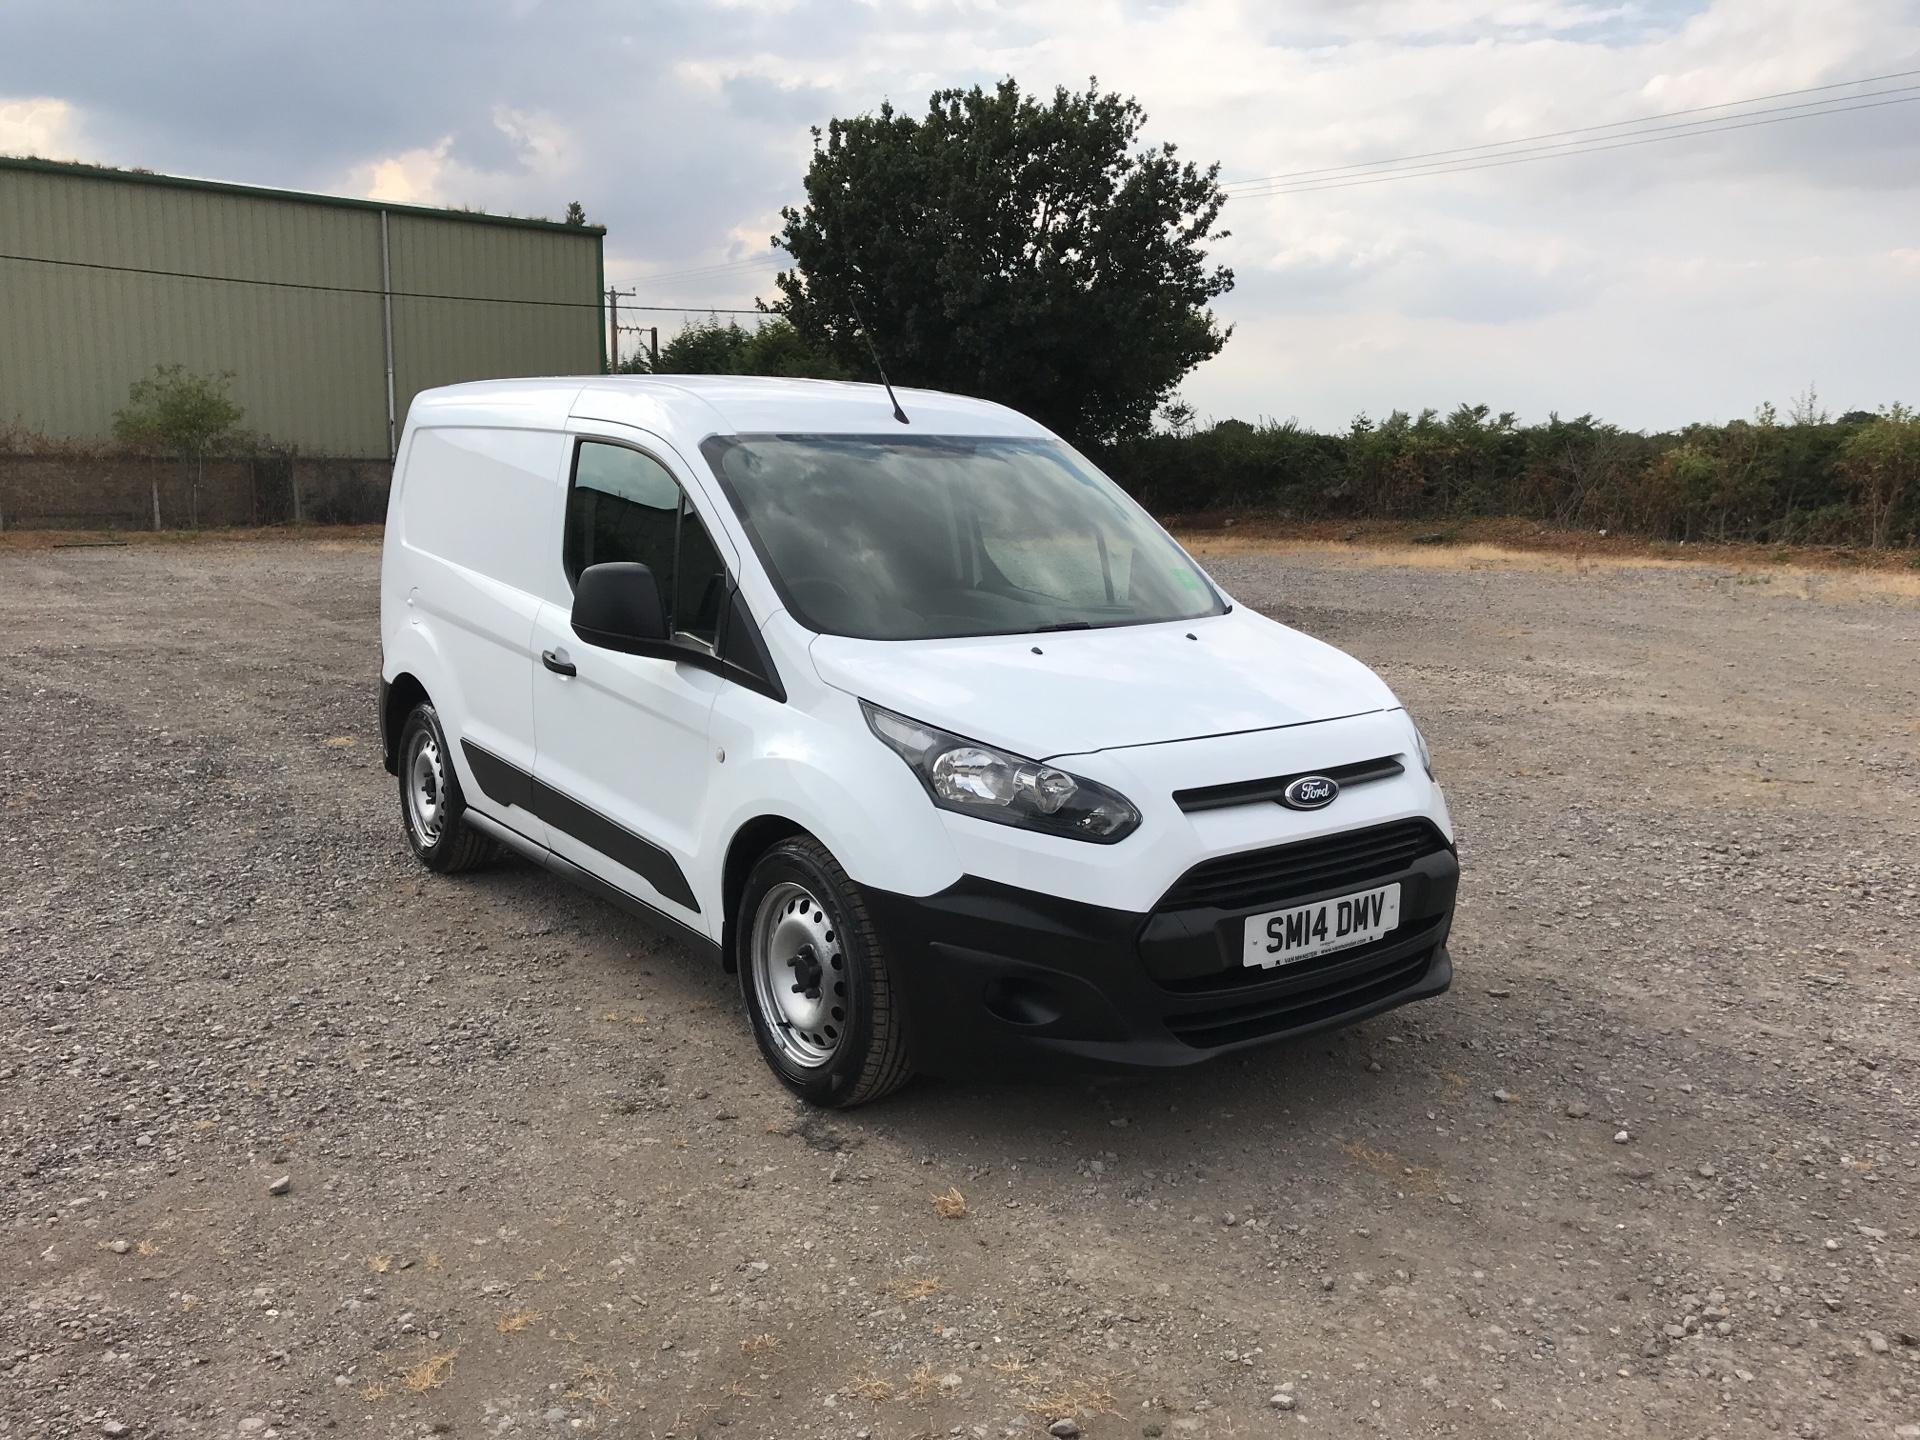 2014 Ford Transit Connect 1.6 Tdci 95Ps Van (SM14DMV)